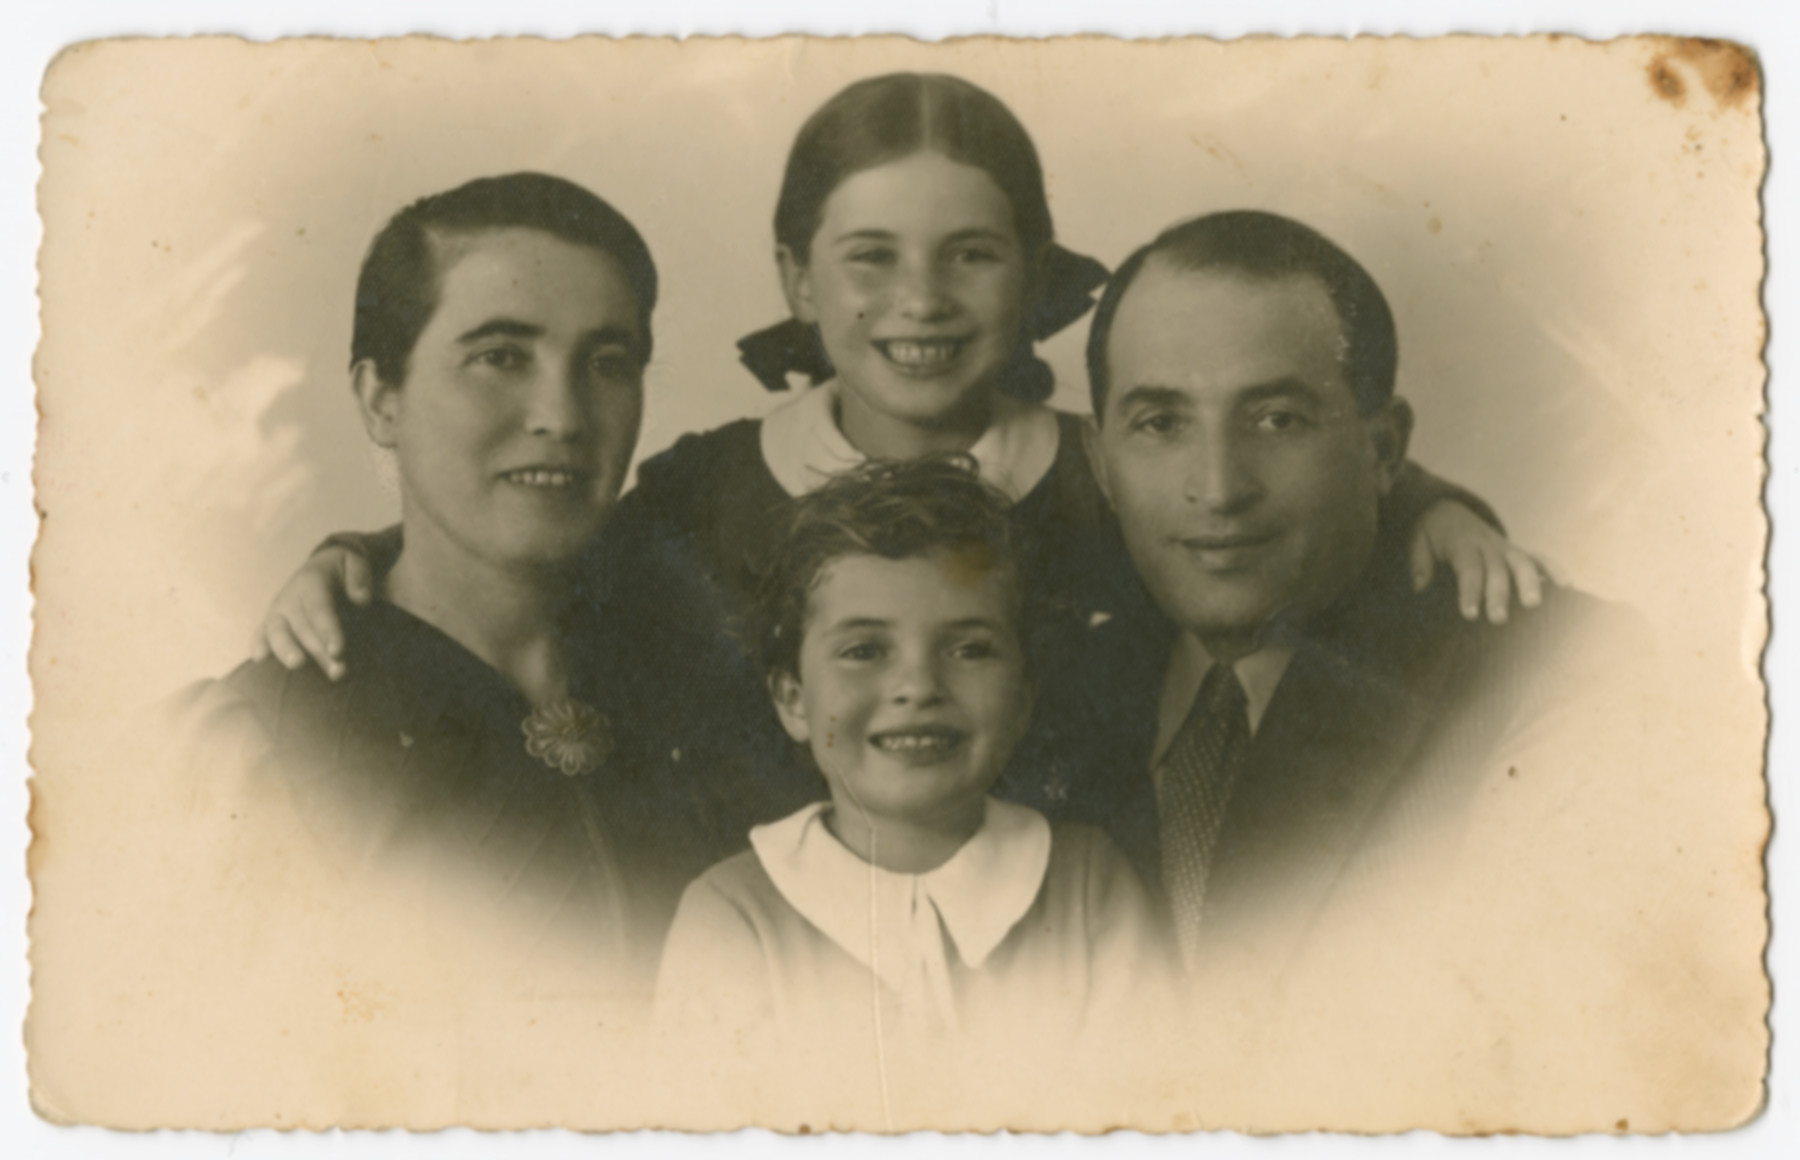 Studio portrait of the Preskowski family in Palestine.  Pictured are Chana, Jacob, Bella and Lea.